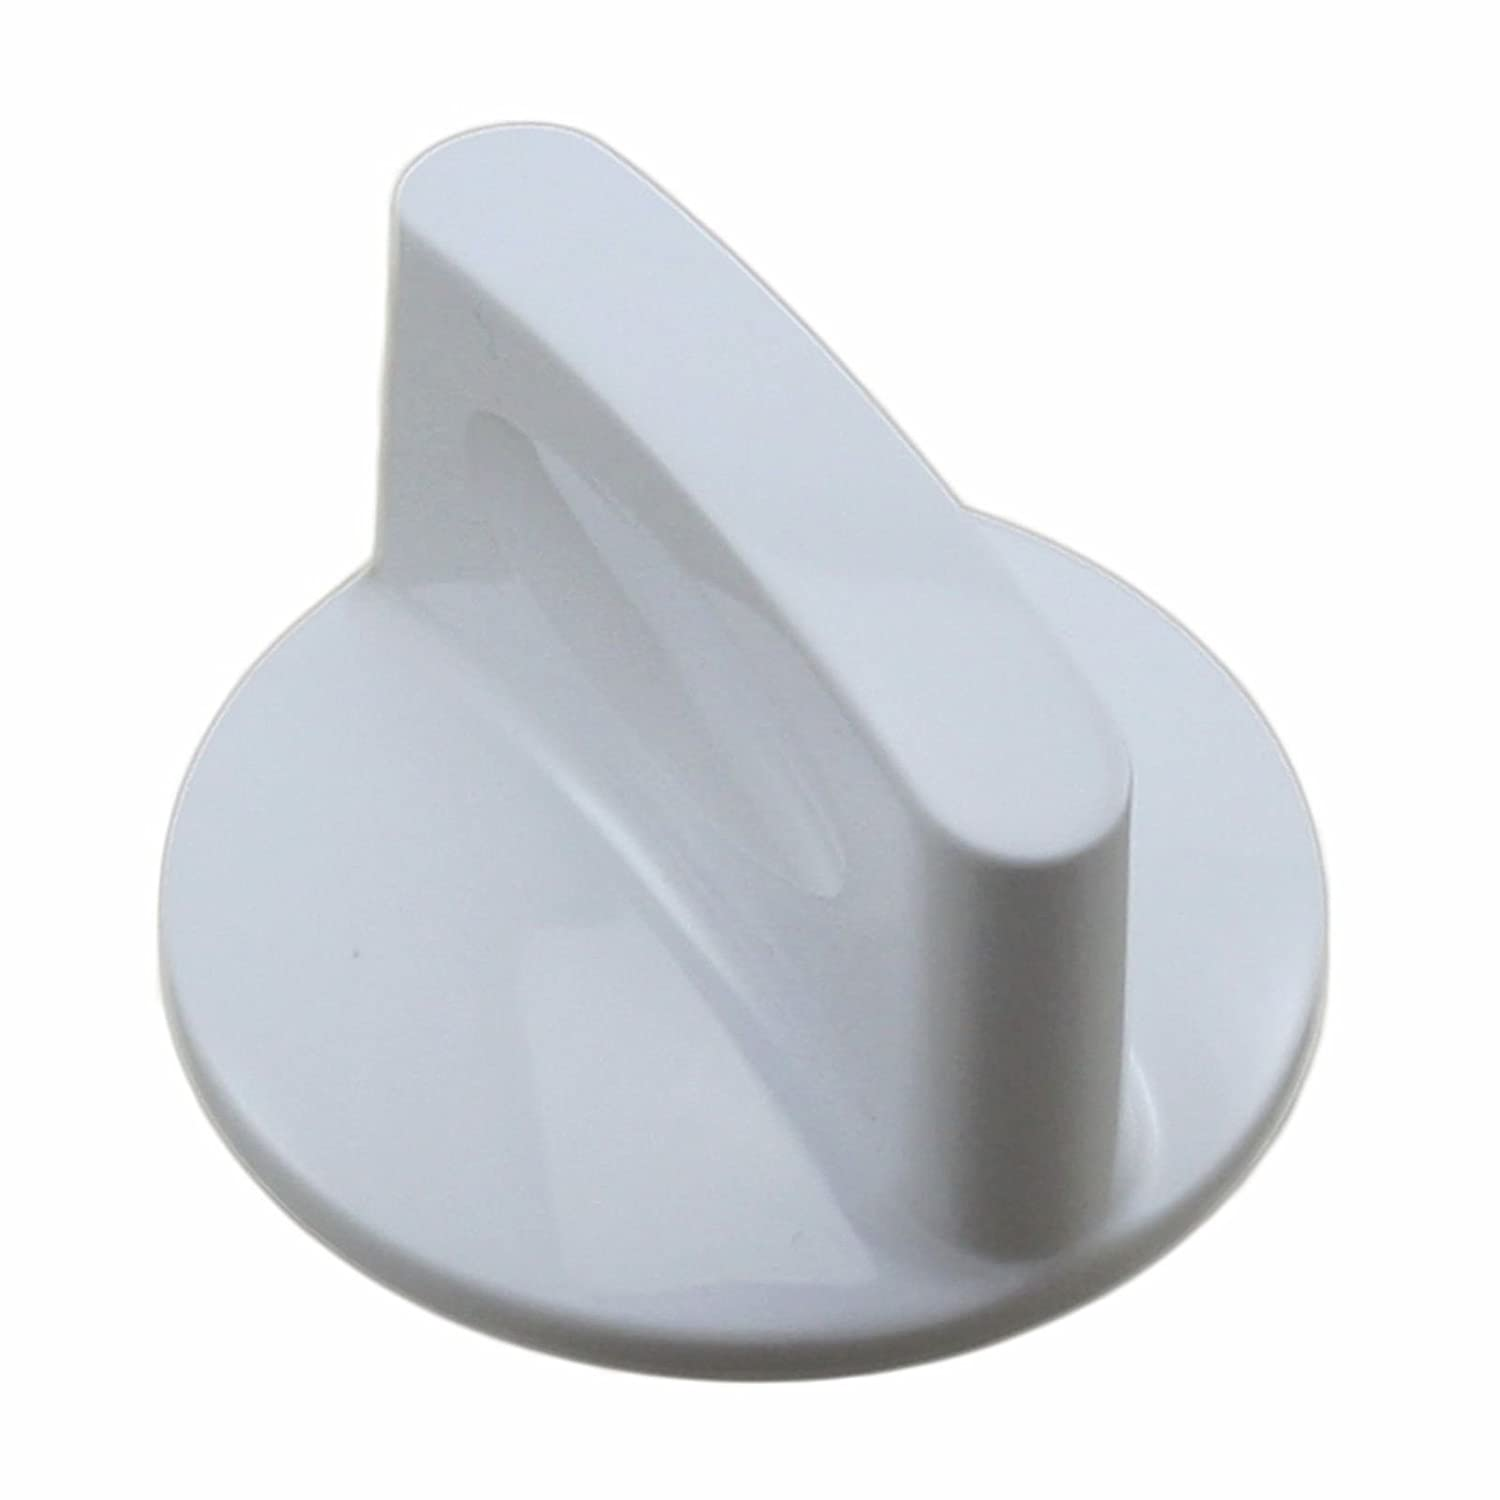 NEBOO WH1X2754 For GE Hotpoint Washer Timer Knob and Clip White PS271124